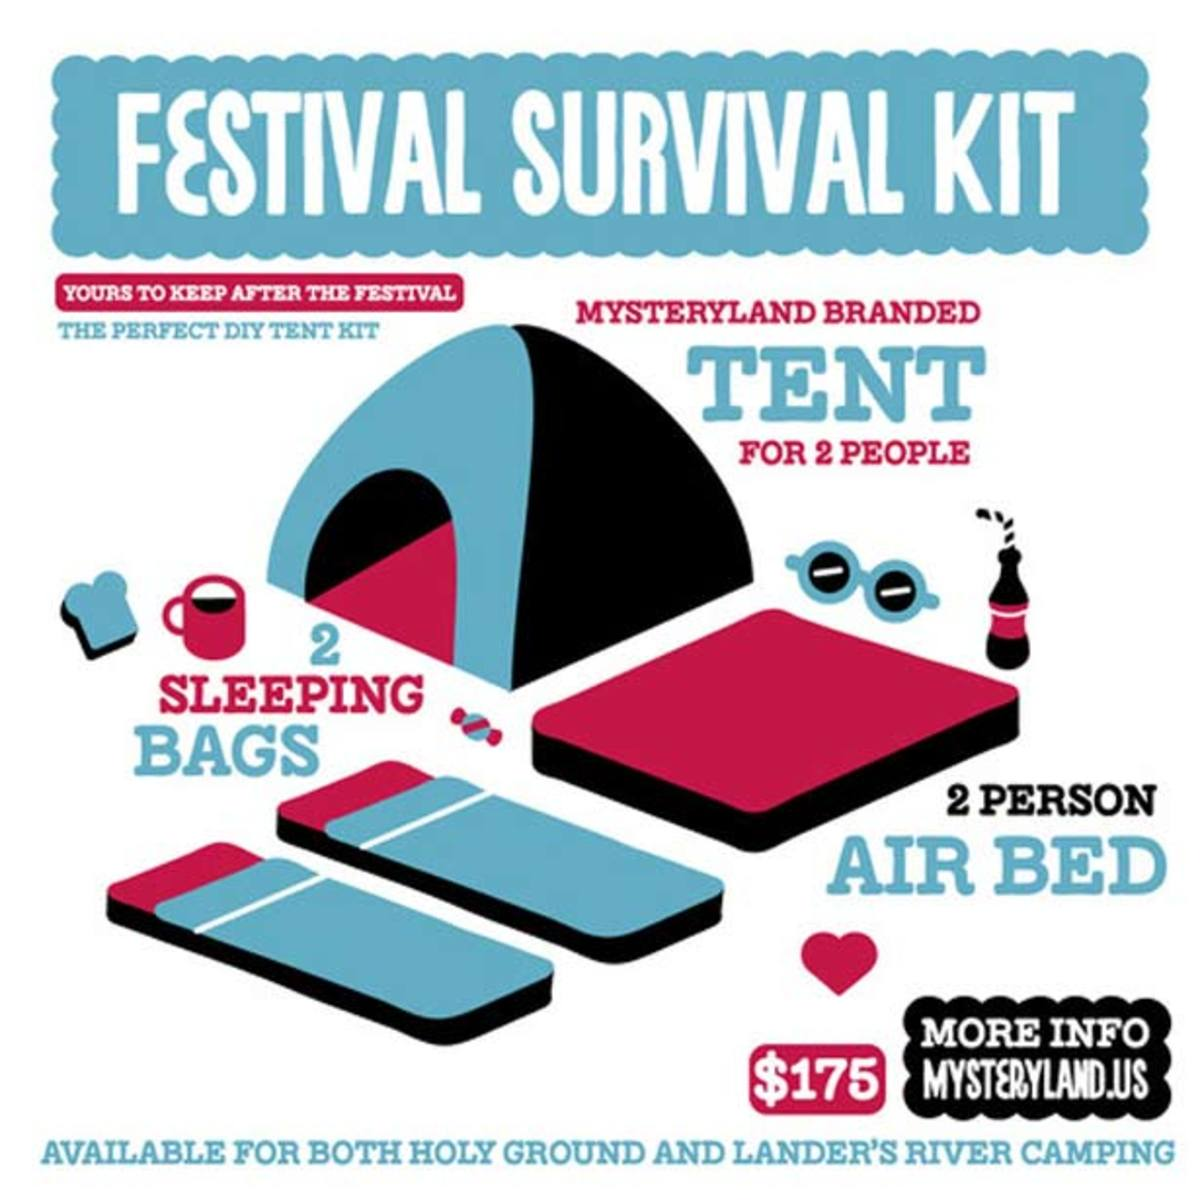 Mysteryland USA's Festival Survival Kit